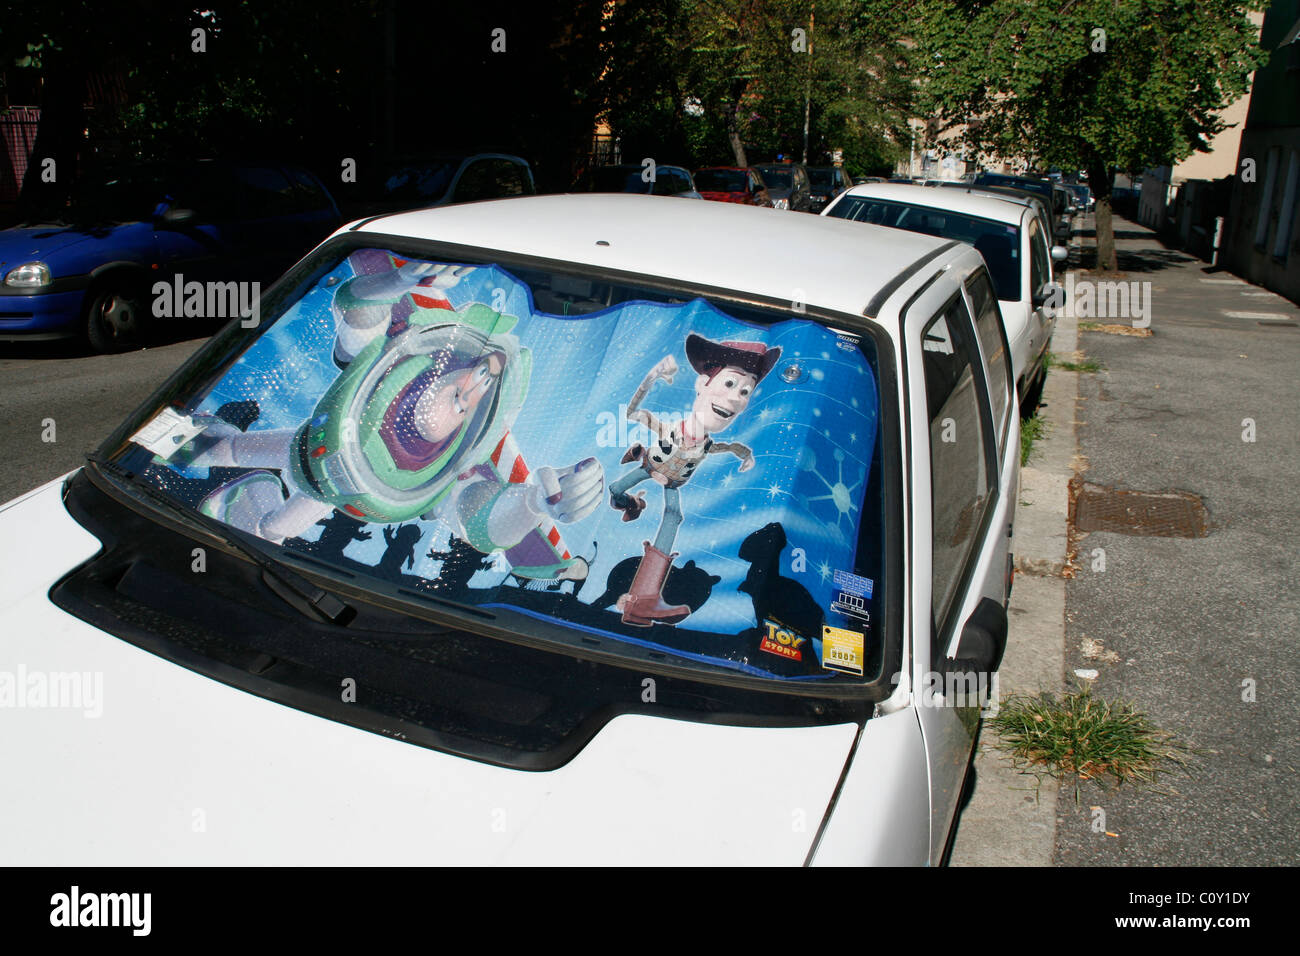 toy story film movie car windscreen sun reflector in rome - Stock Image